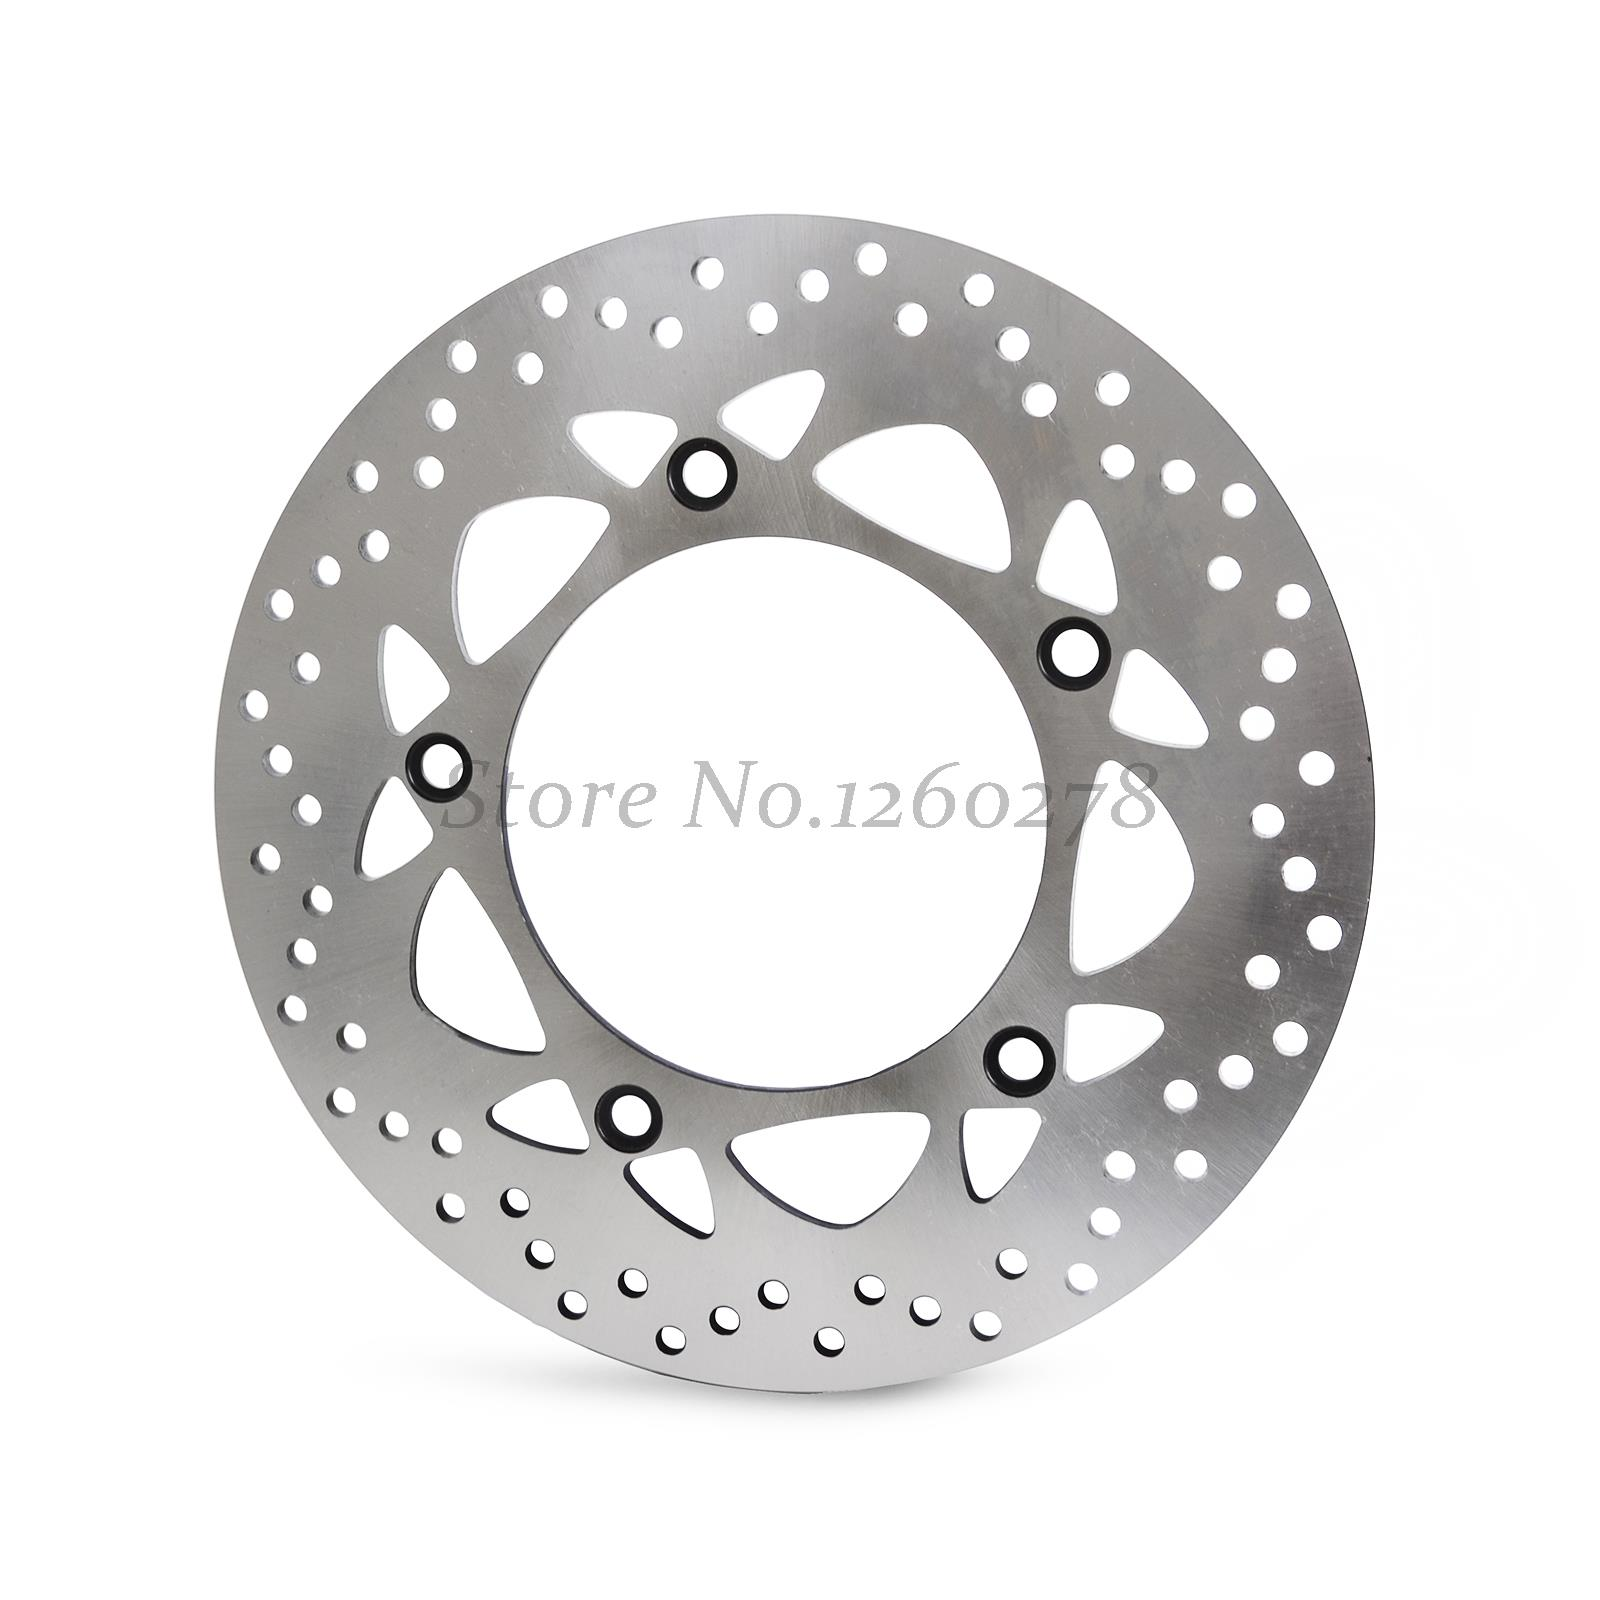 Motorcycle Rear Brake Disc Rotor For Yamaha T-Max 500(530cc engine/Non & ABS models) 12-14 motorcycle rear brake rotor disks disc for yamaha xp500 tmax500 t max500 2001 2011 xp 500 abs t max 500 abs 2008 2009 2010 2011